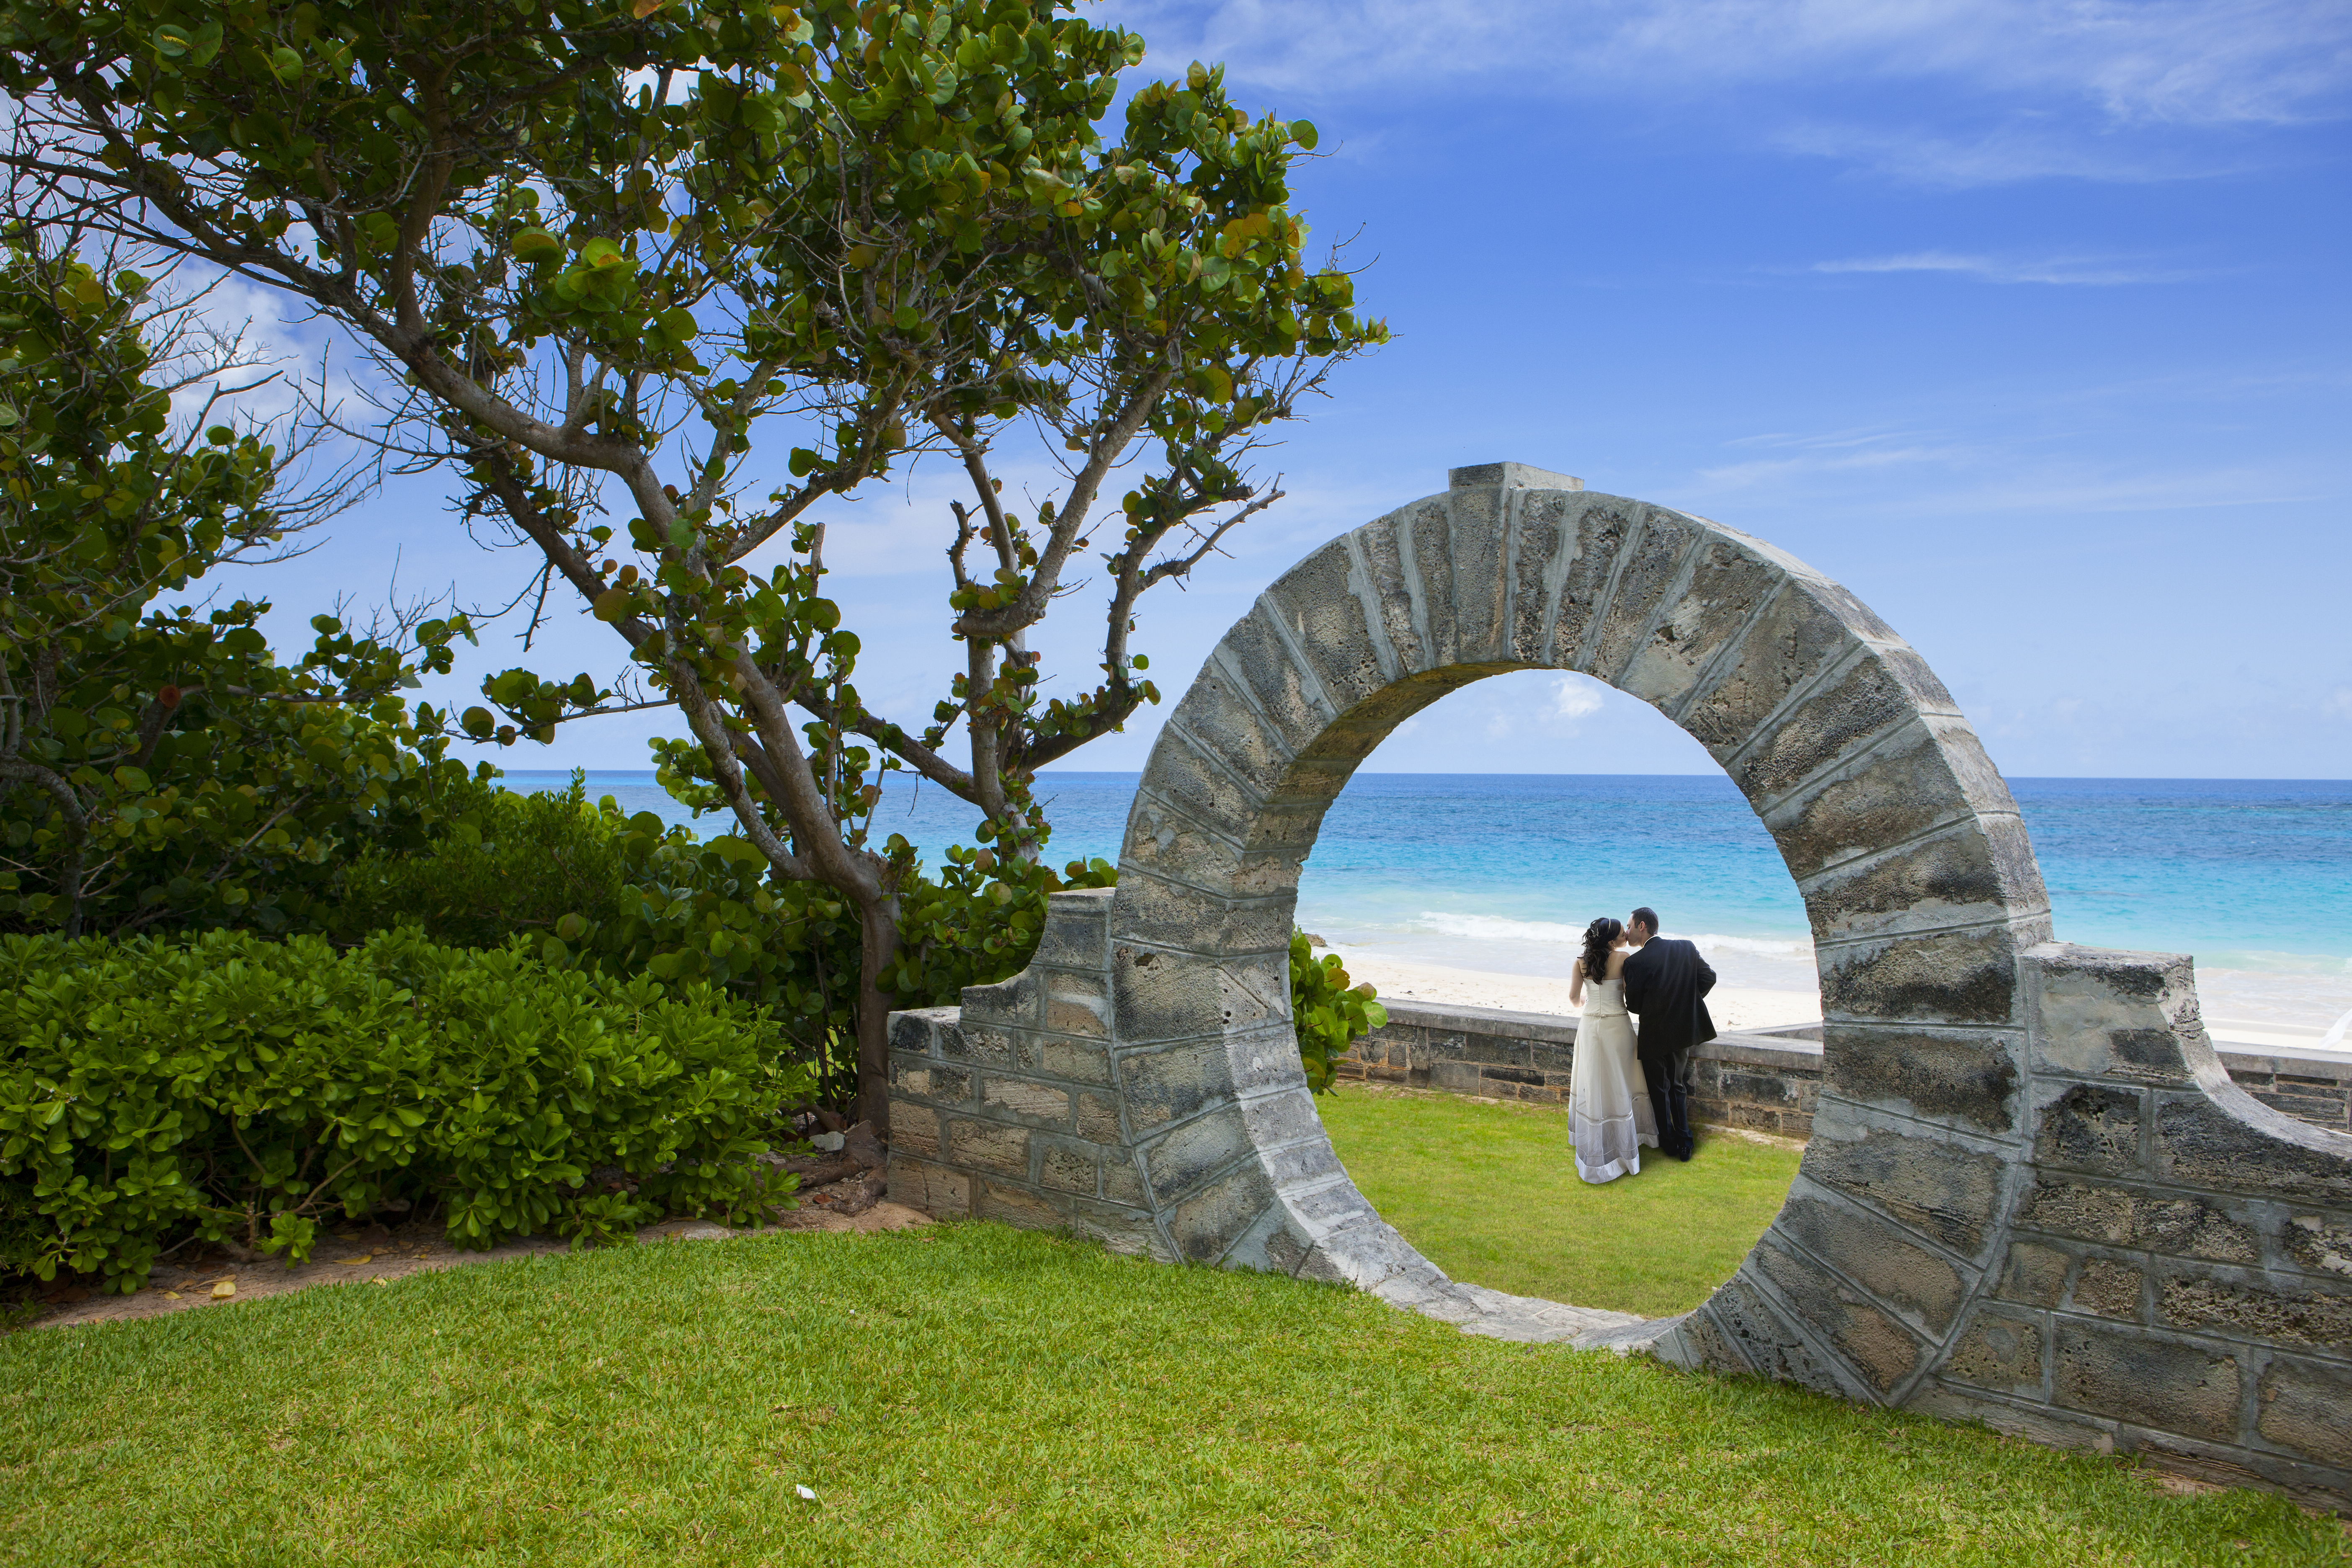 Destinations, Destination Weddings, Honeymoons, Caribbean, Beach, Cultural, Relaxing, Culture, Bermuda